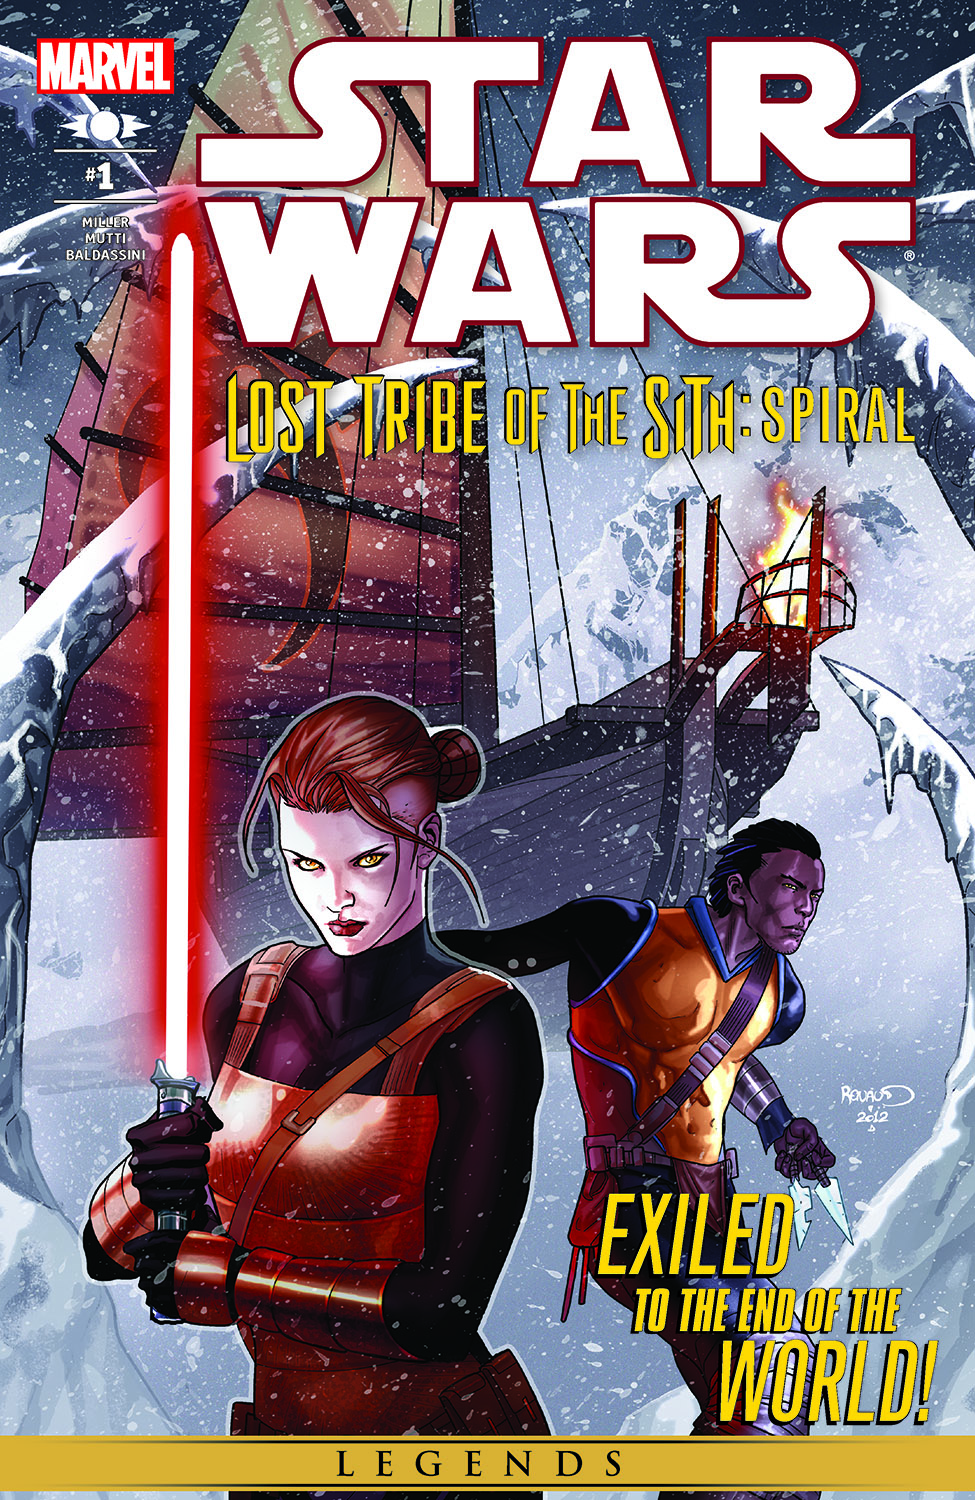 Star Wars: Lost Tribe Of The Sith - Spiral (2012) #1